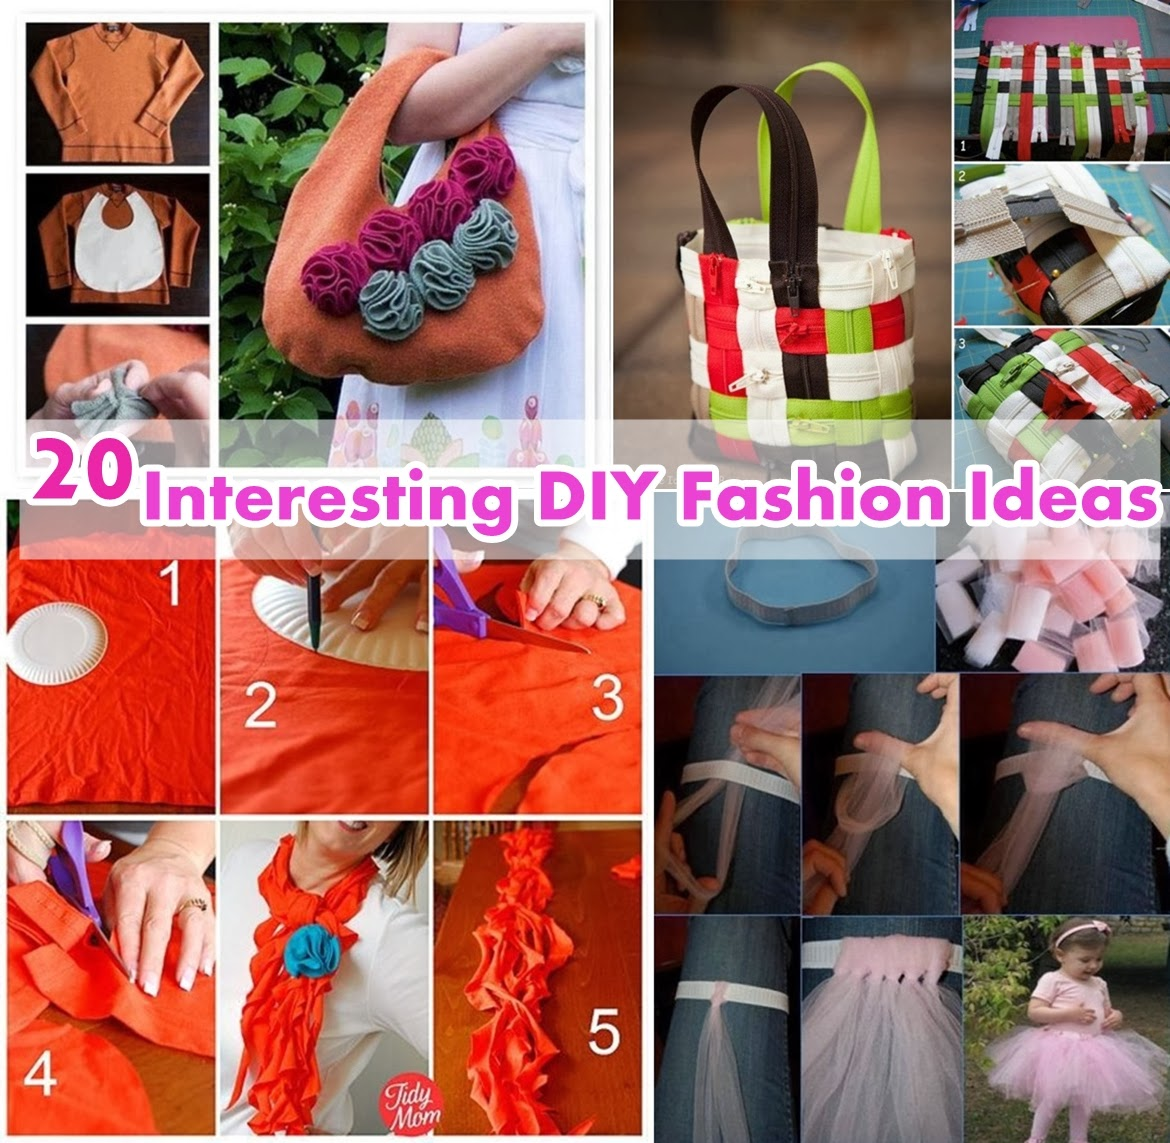 Recycled materials, Creative ideas and Just be on Pinterest